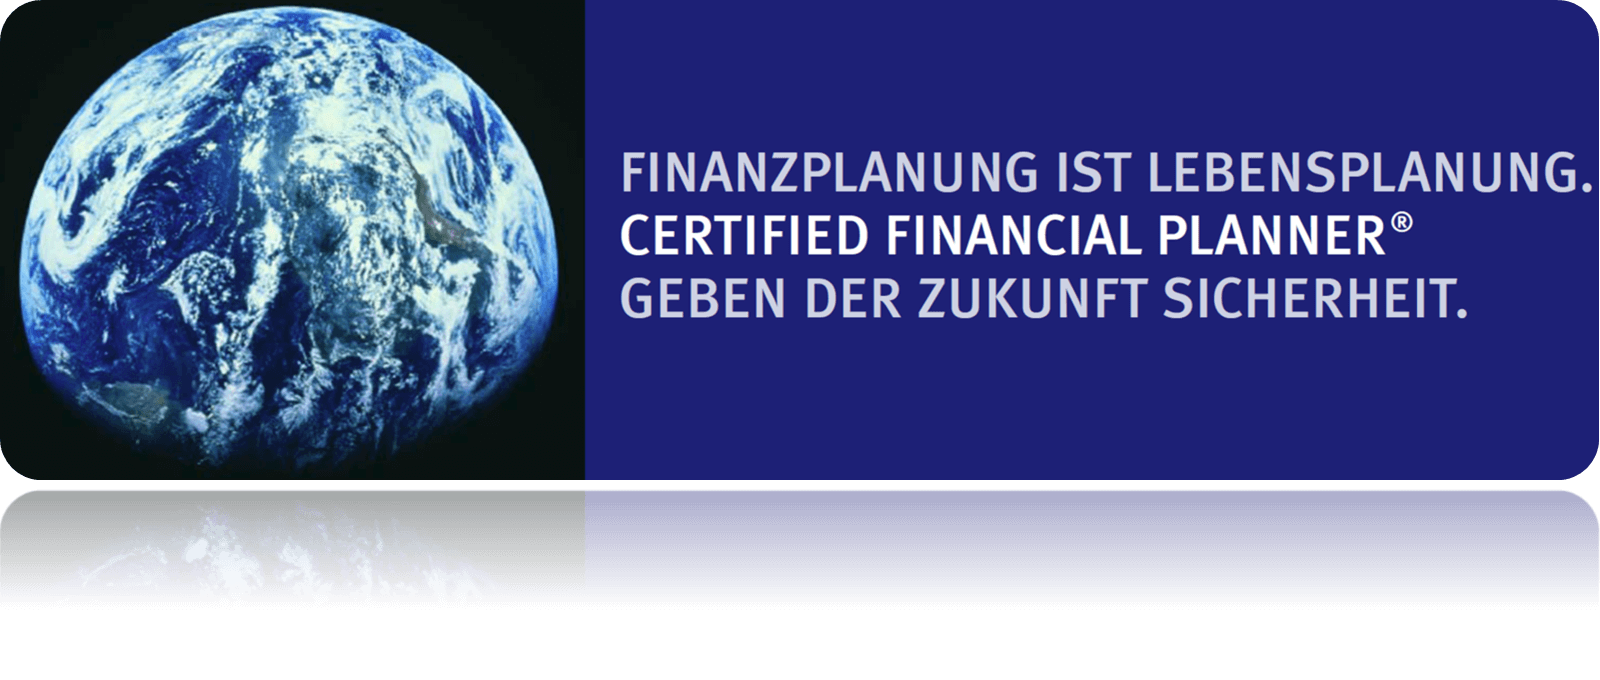 Certified Financial Planner - CFP